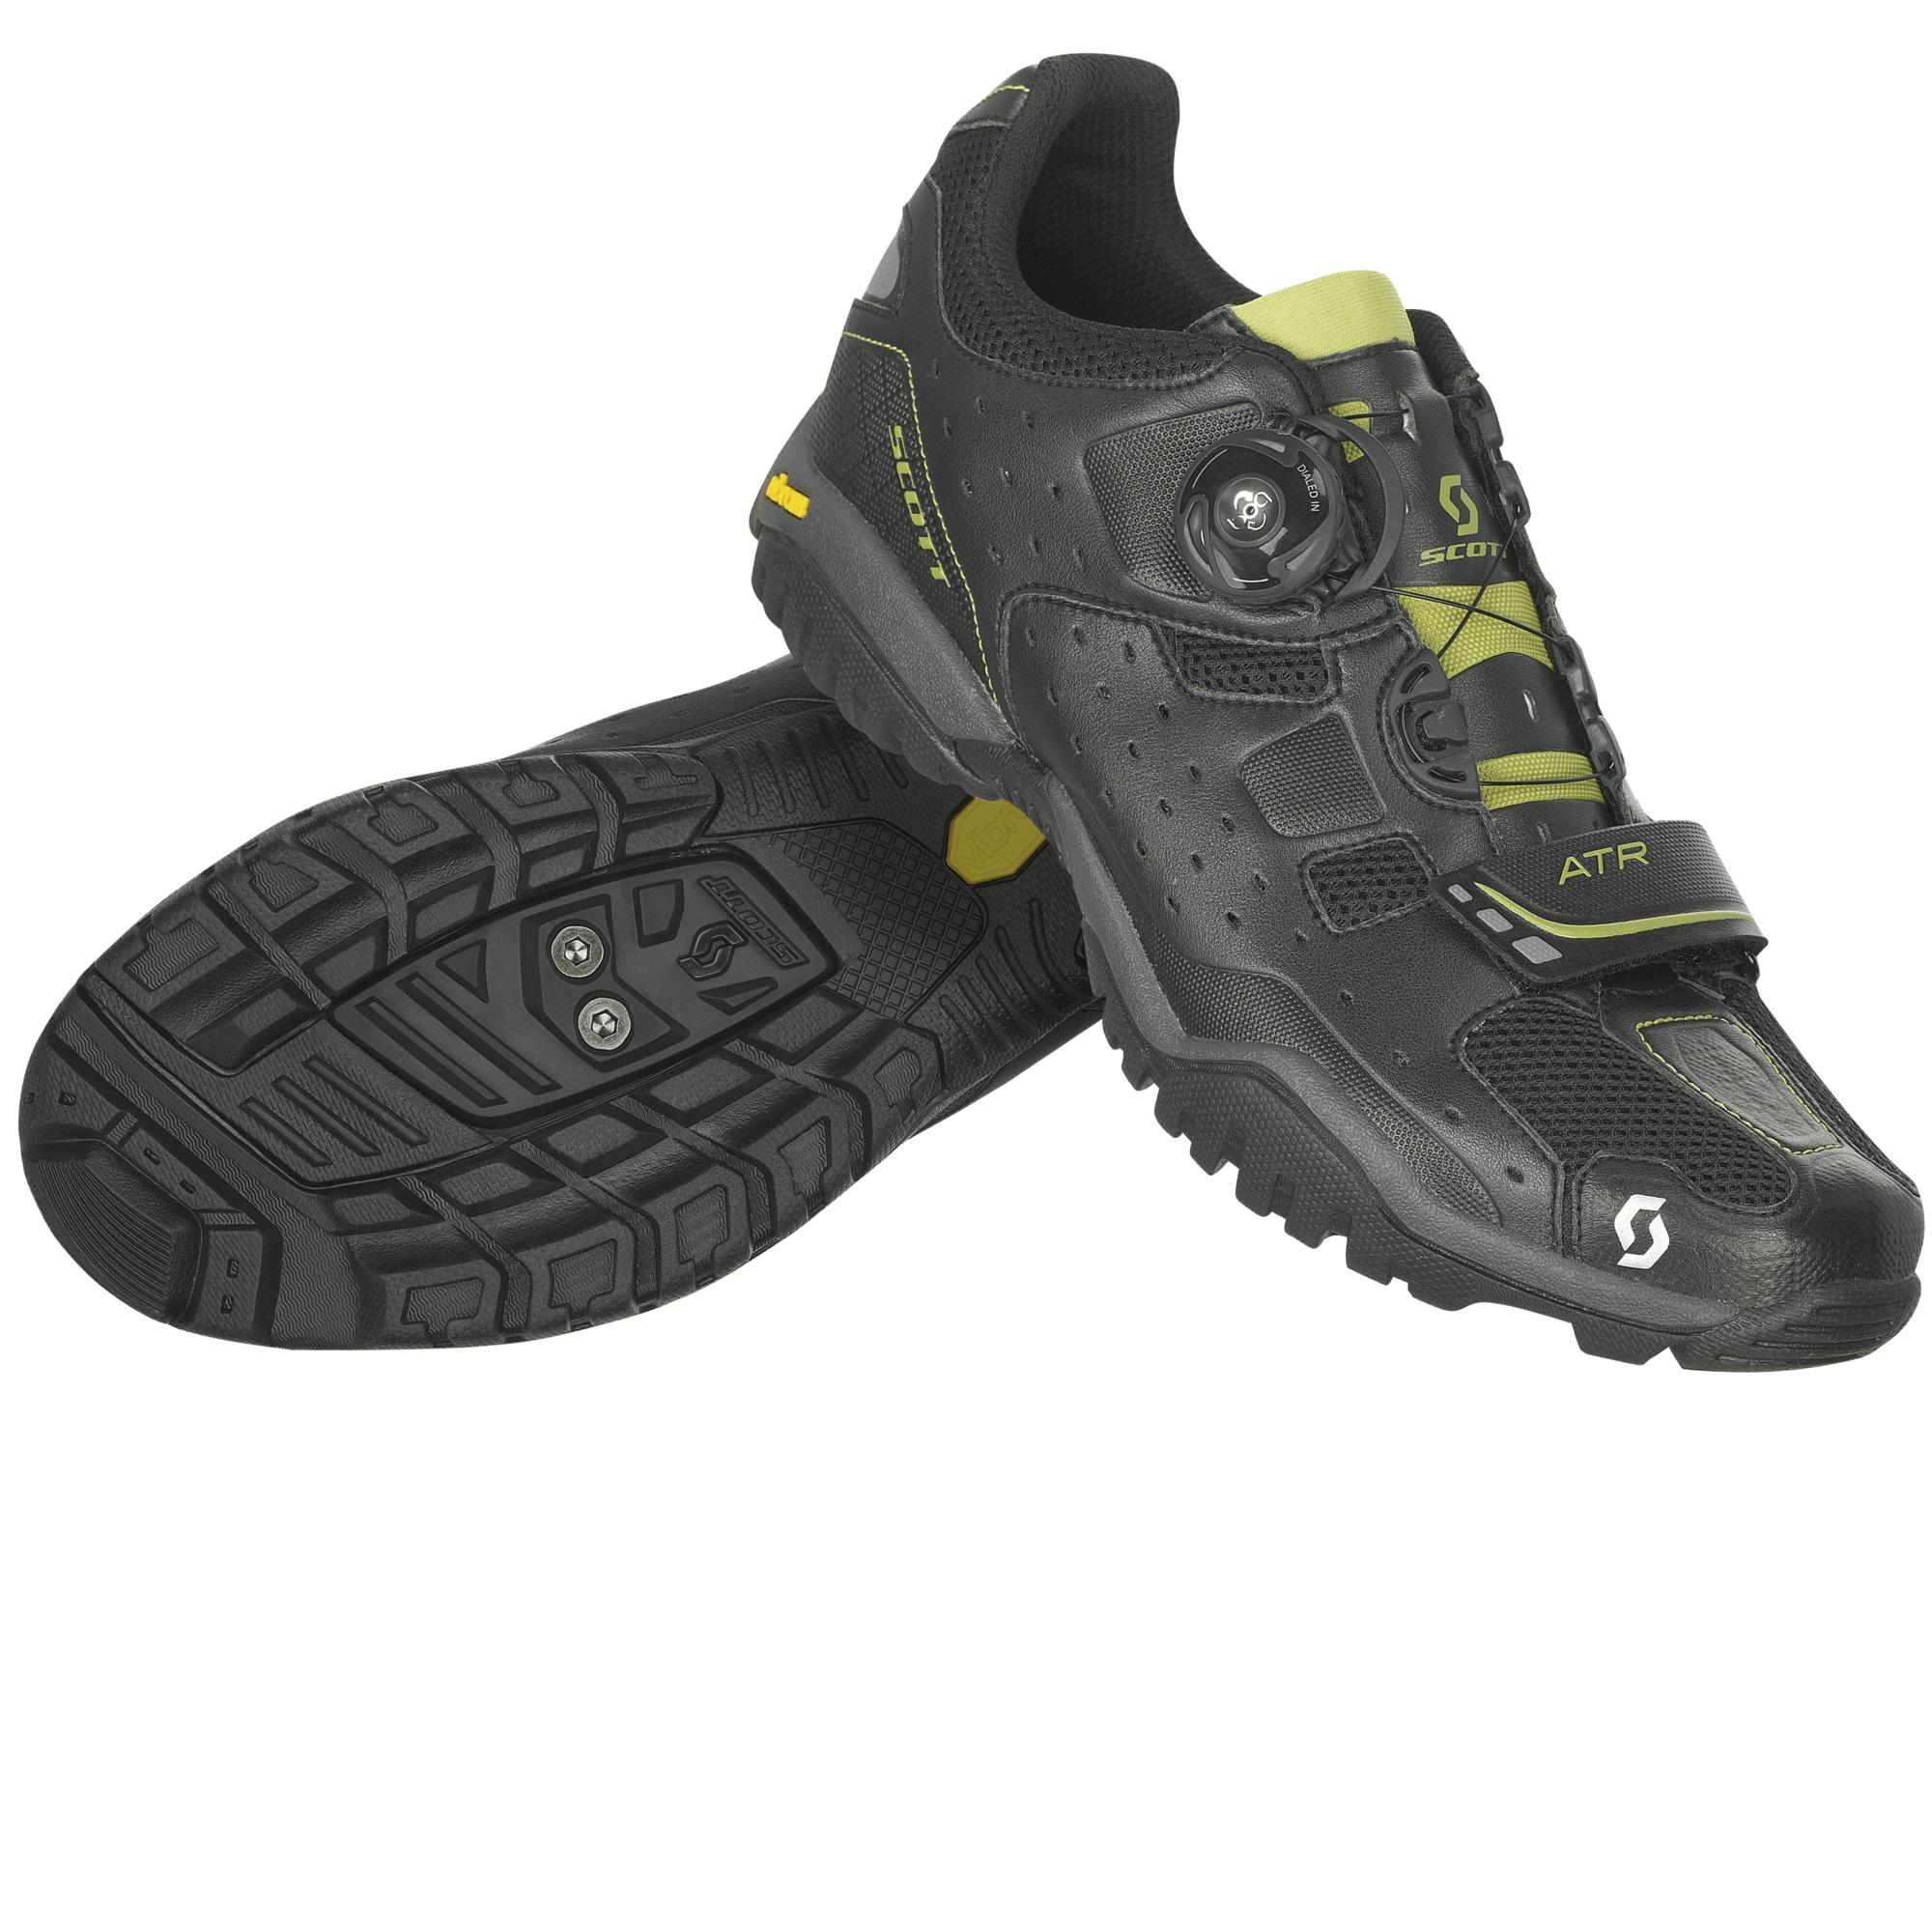 ���r/���k�;��O��t_sole provides extra traction when crossing rivers or hiking